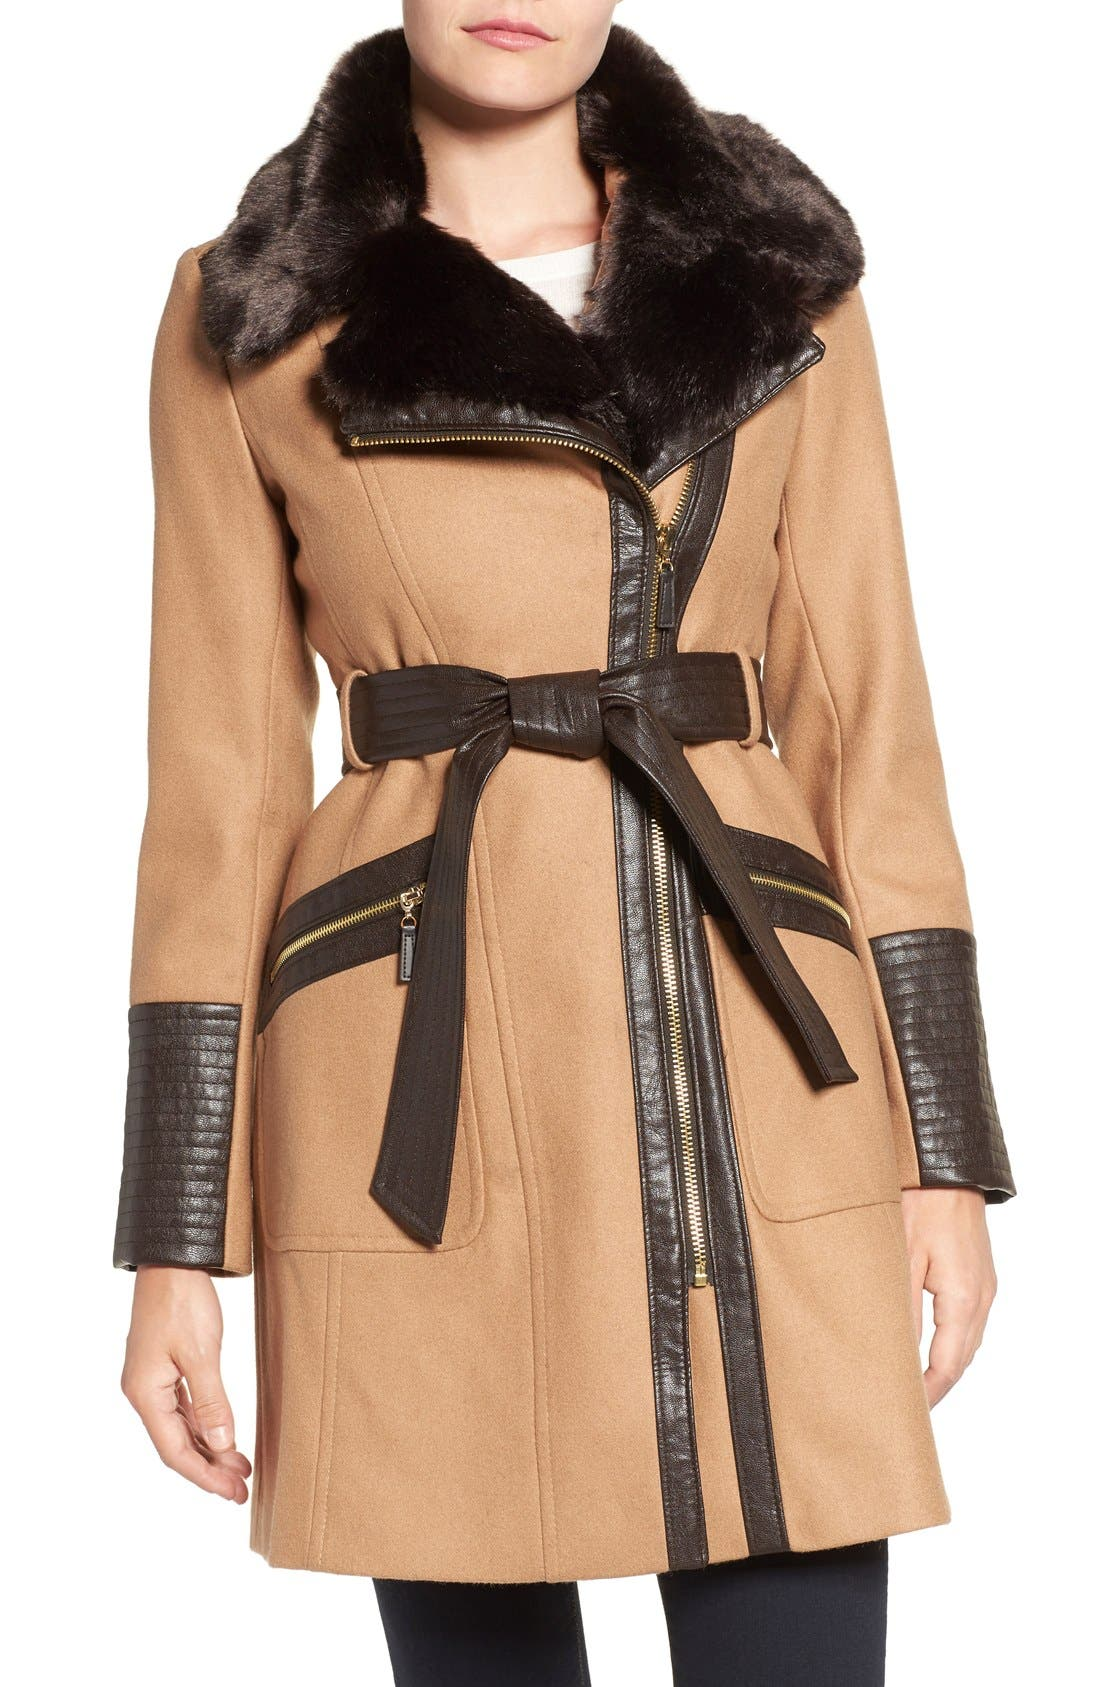 Alternate Image 1 Selected - Via Spiga Faux Leather & Faux Fur Trim Belted Wool Blend Coat